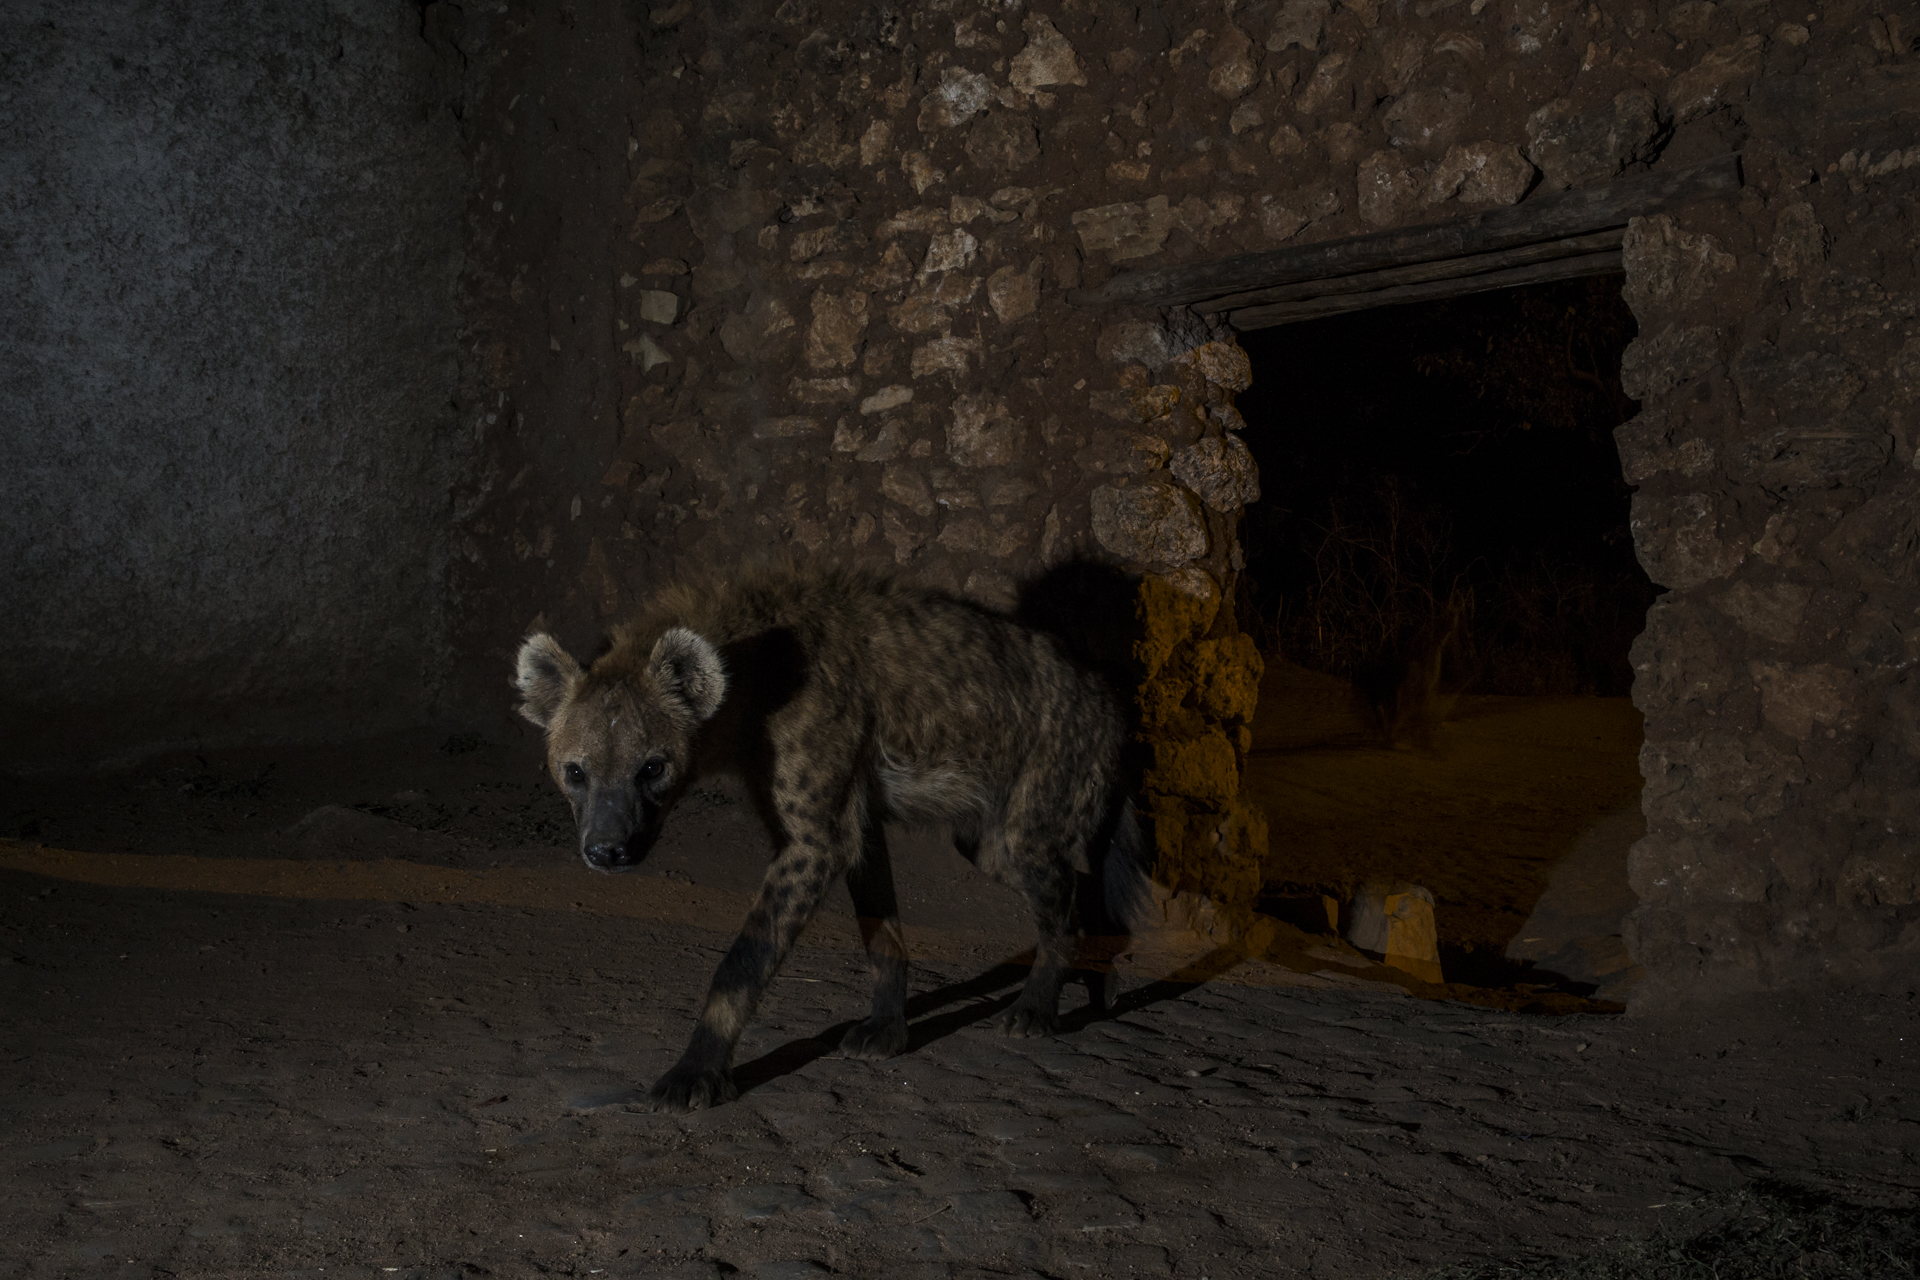 As a walled city, special hyena gates were constructed hundreds of years ago to allow access for the hyenas once the main gates were closed at dusk.